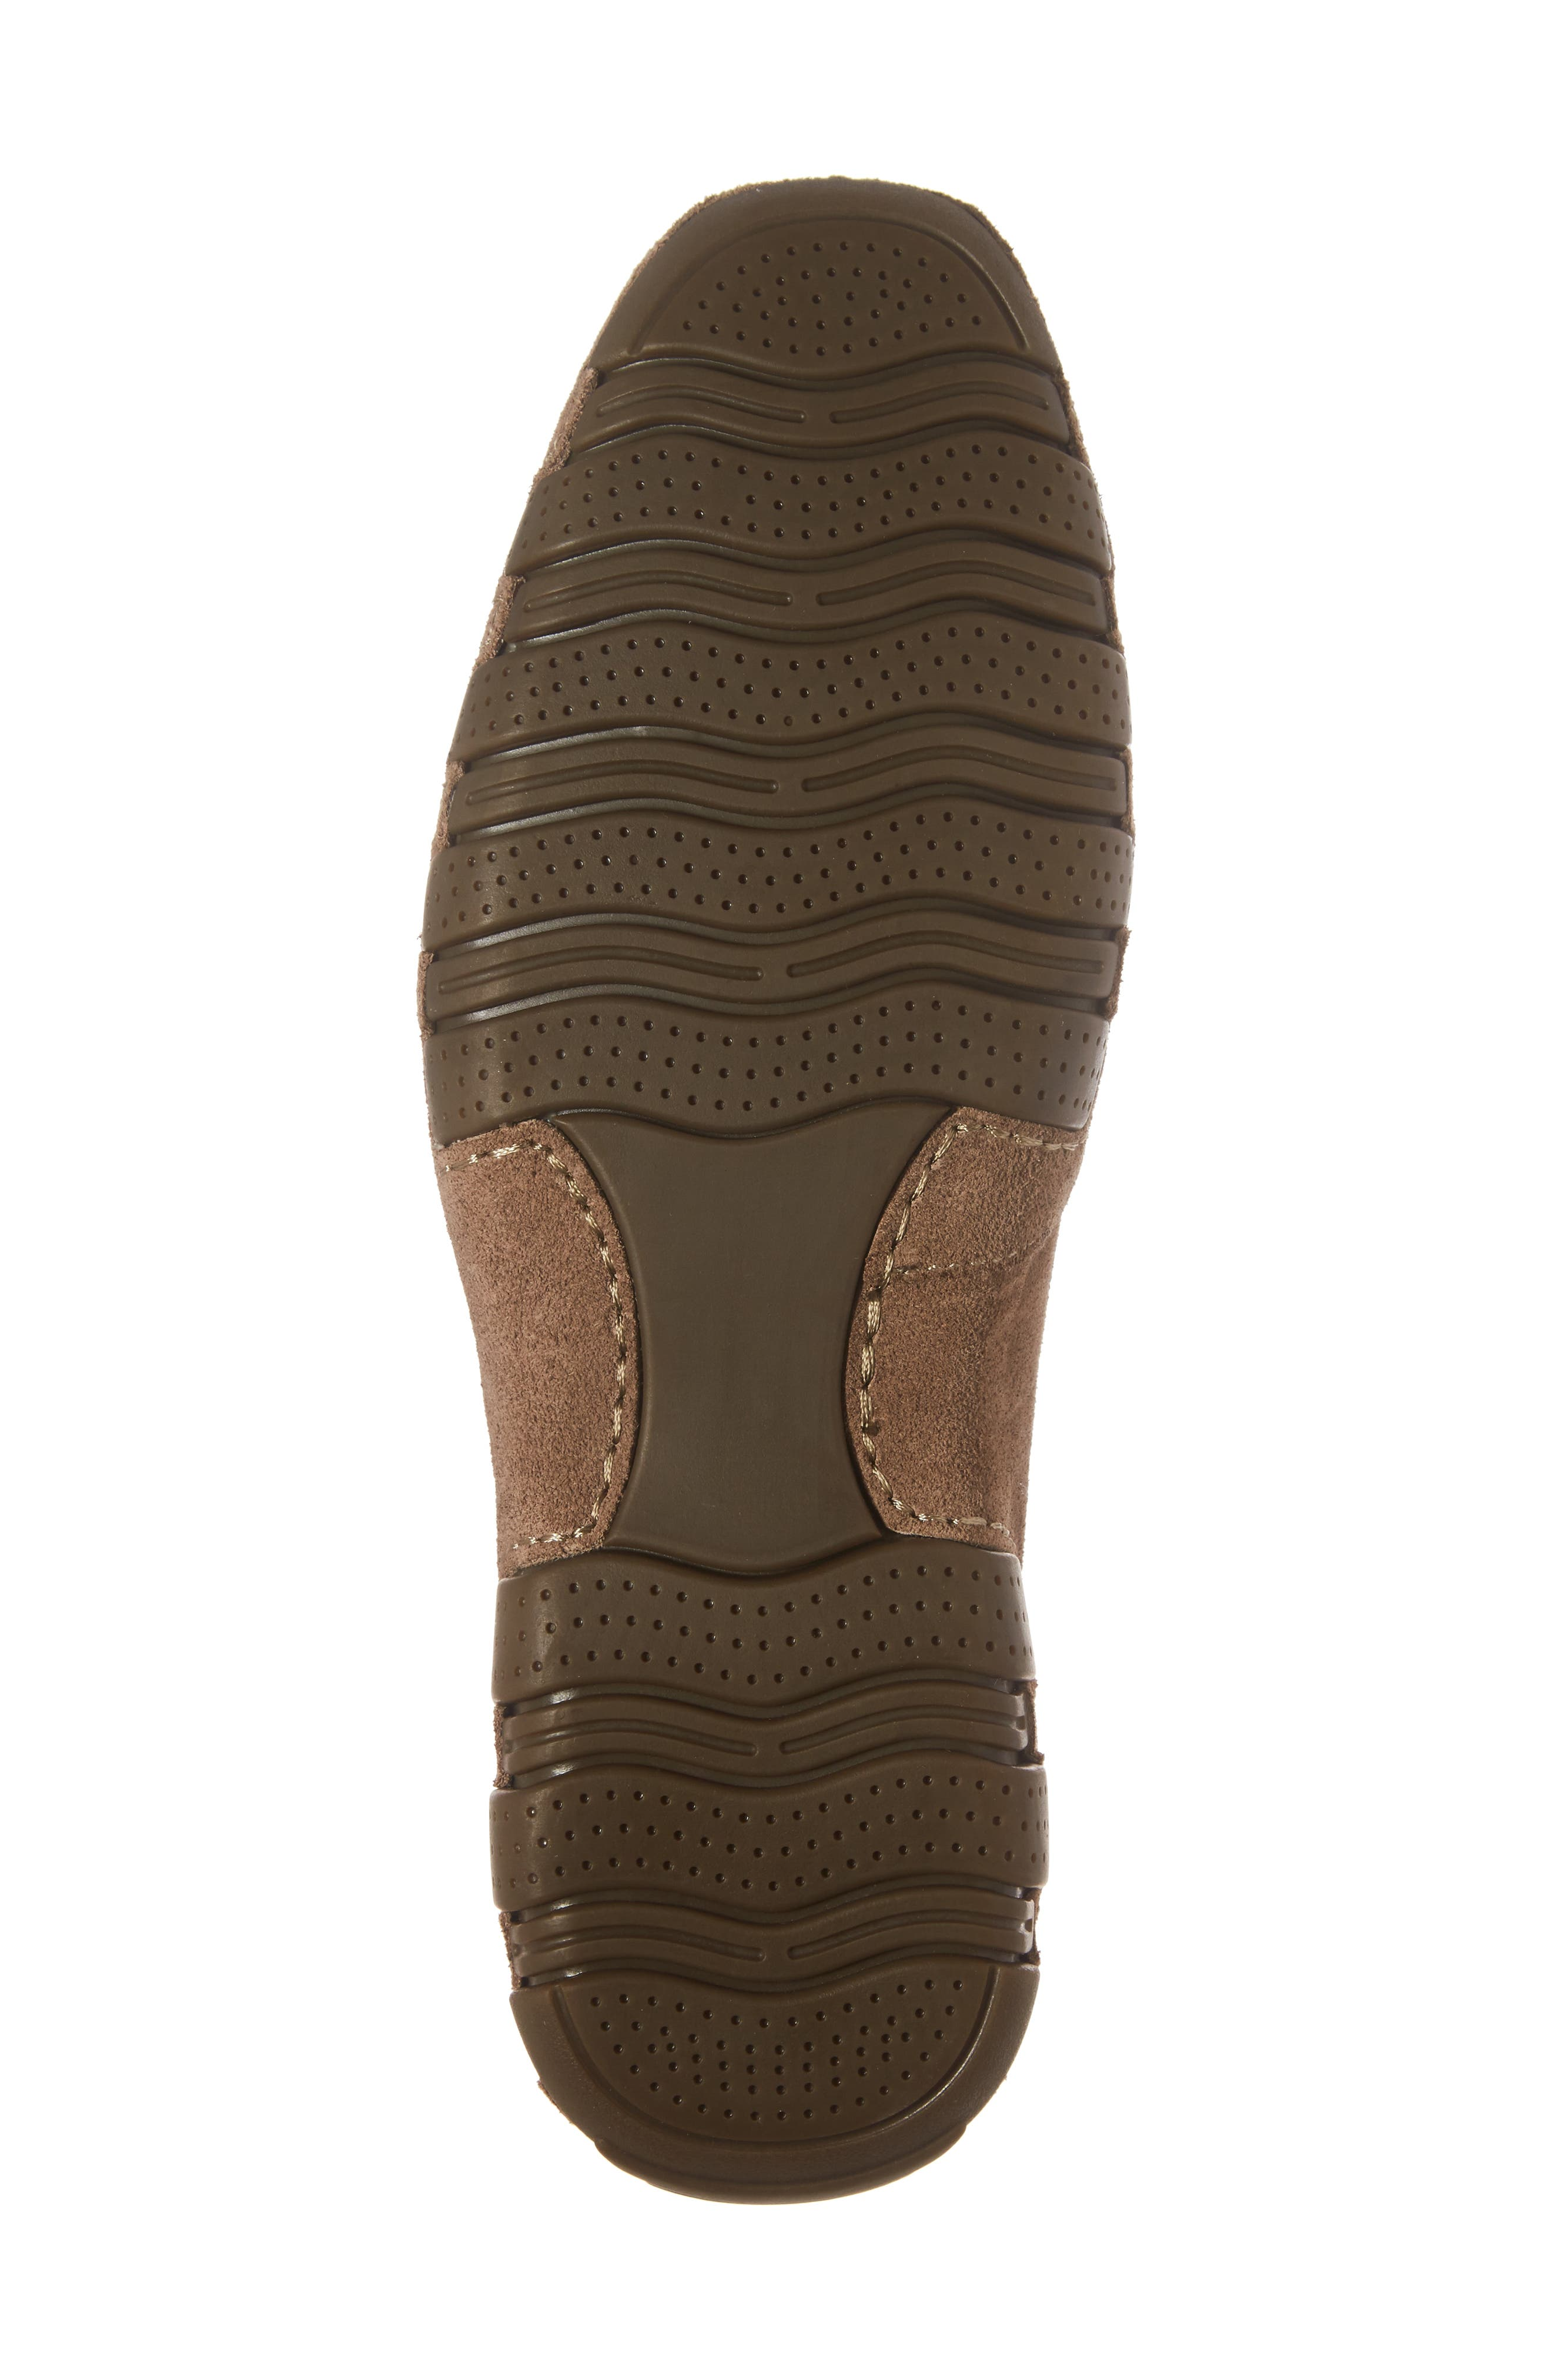 Kenneth Cole Reaction Driving Shoe,                             Alternate thumbnail 6, color,                             Taupe